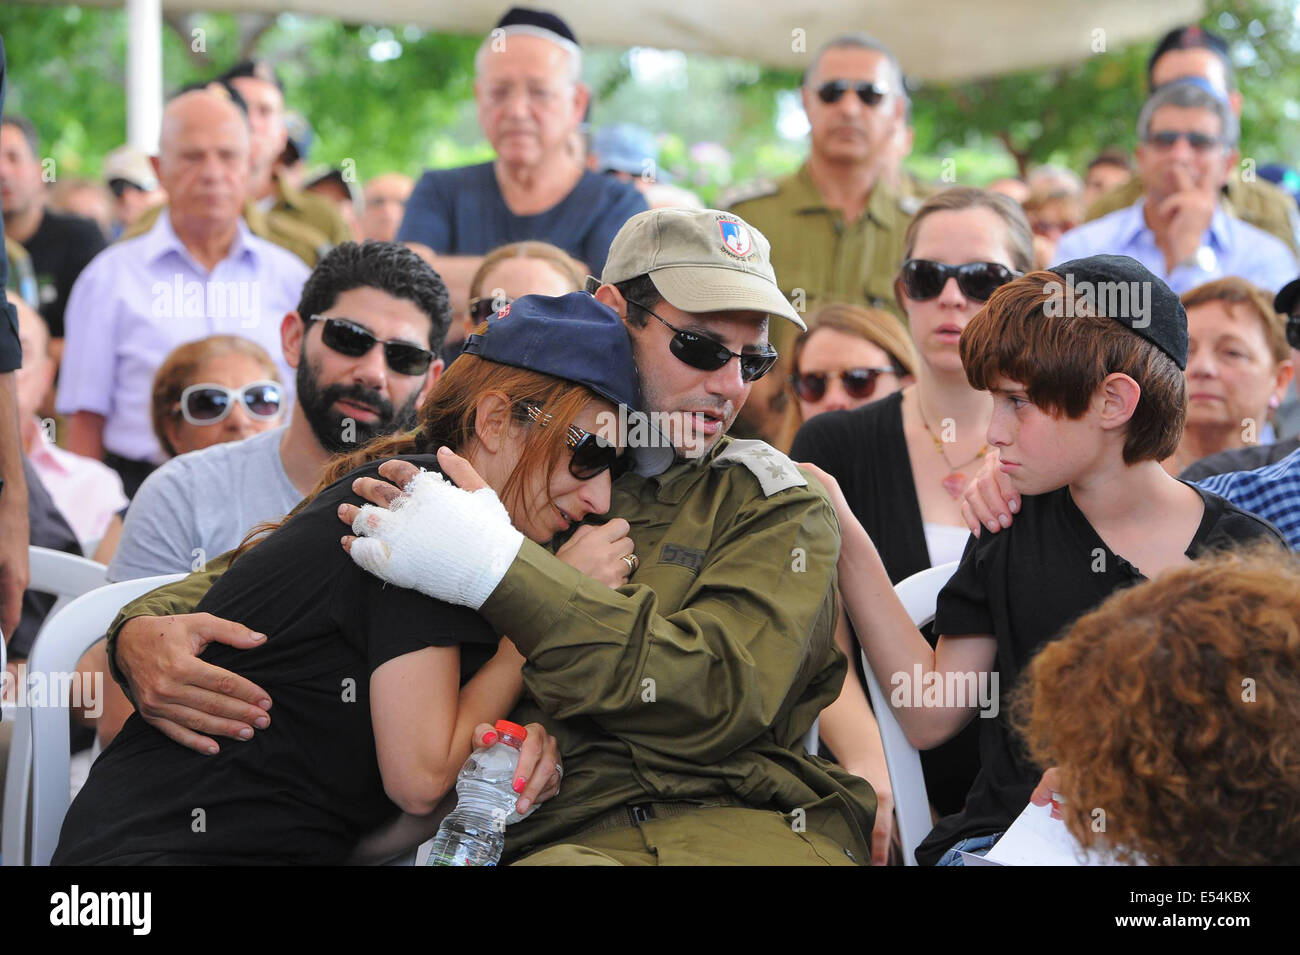 Gaza Border, Israel. 20th July, 2014. Sagit, the wife of Major Amotz Greenberg, a 45-year-old reserve soldier killed - Stock Image